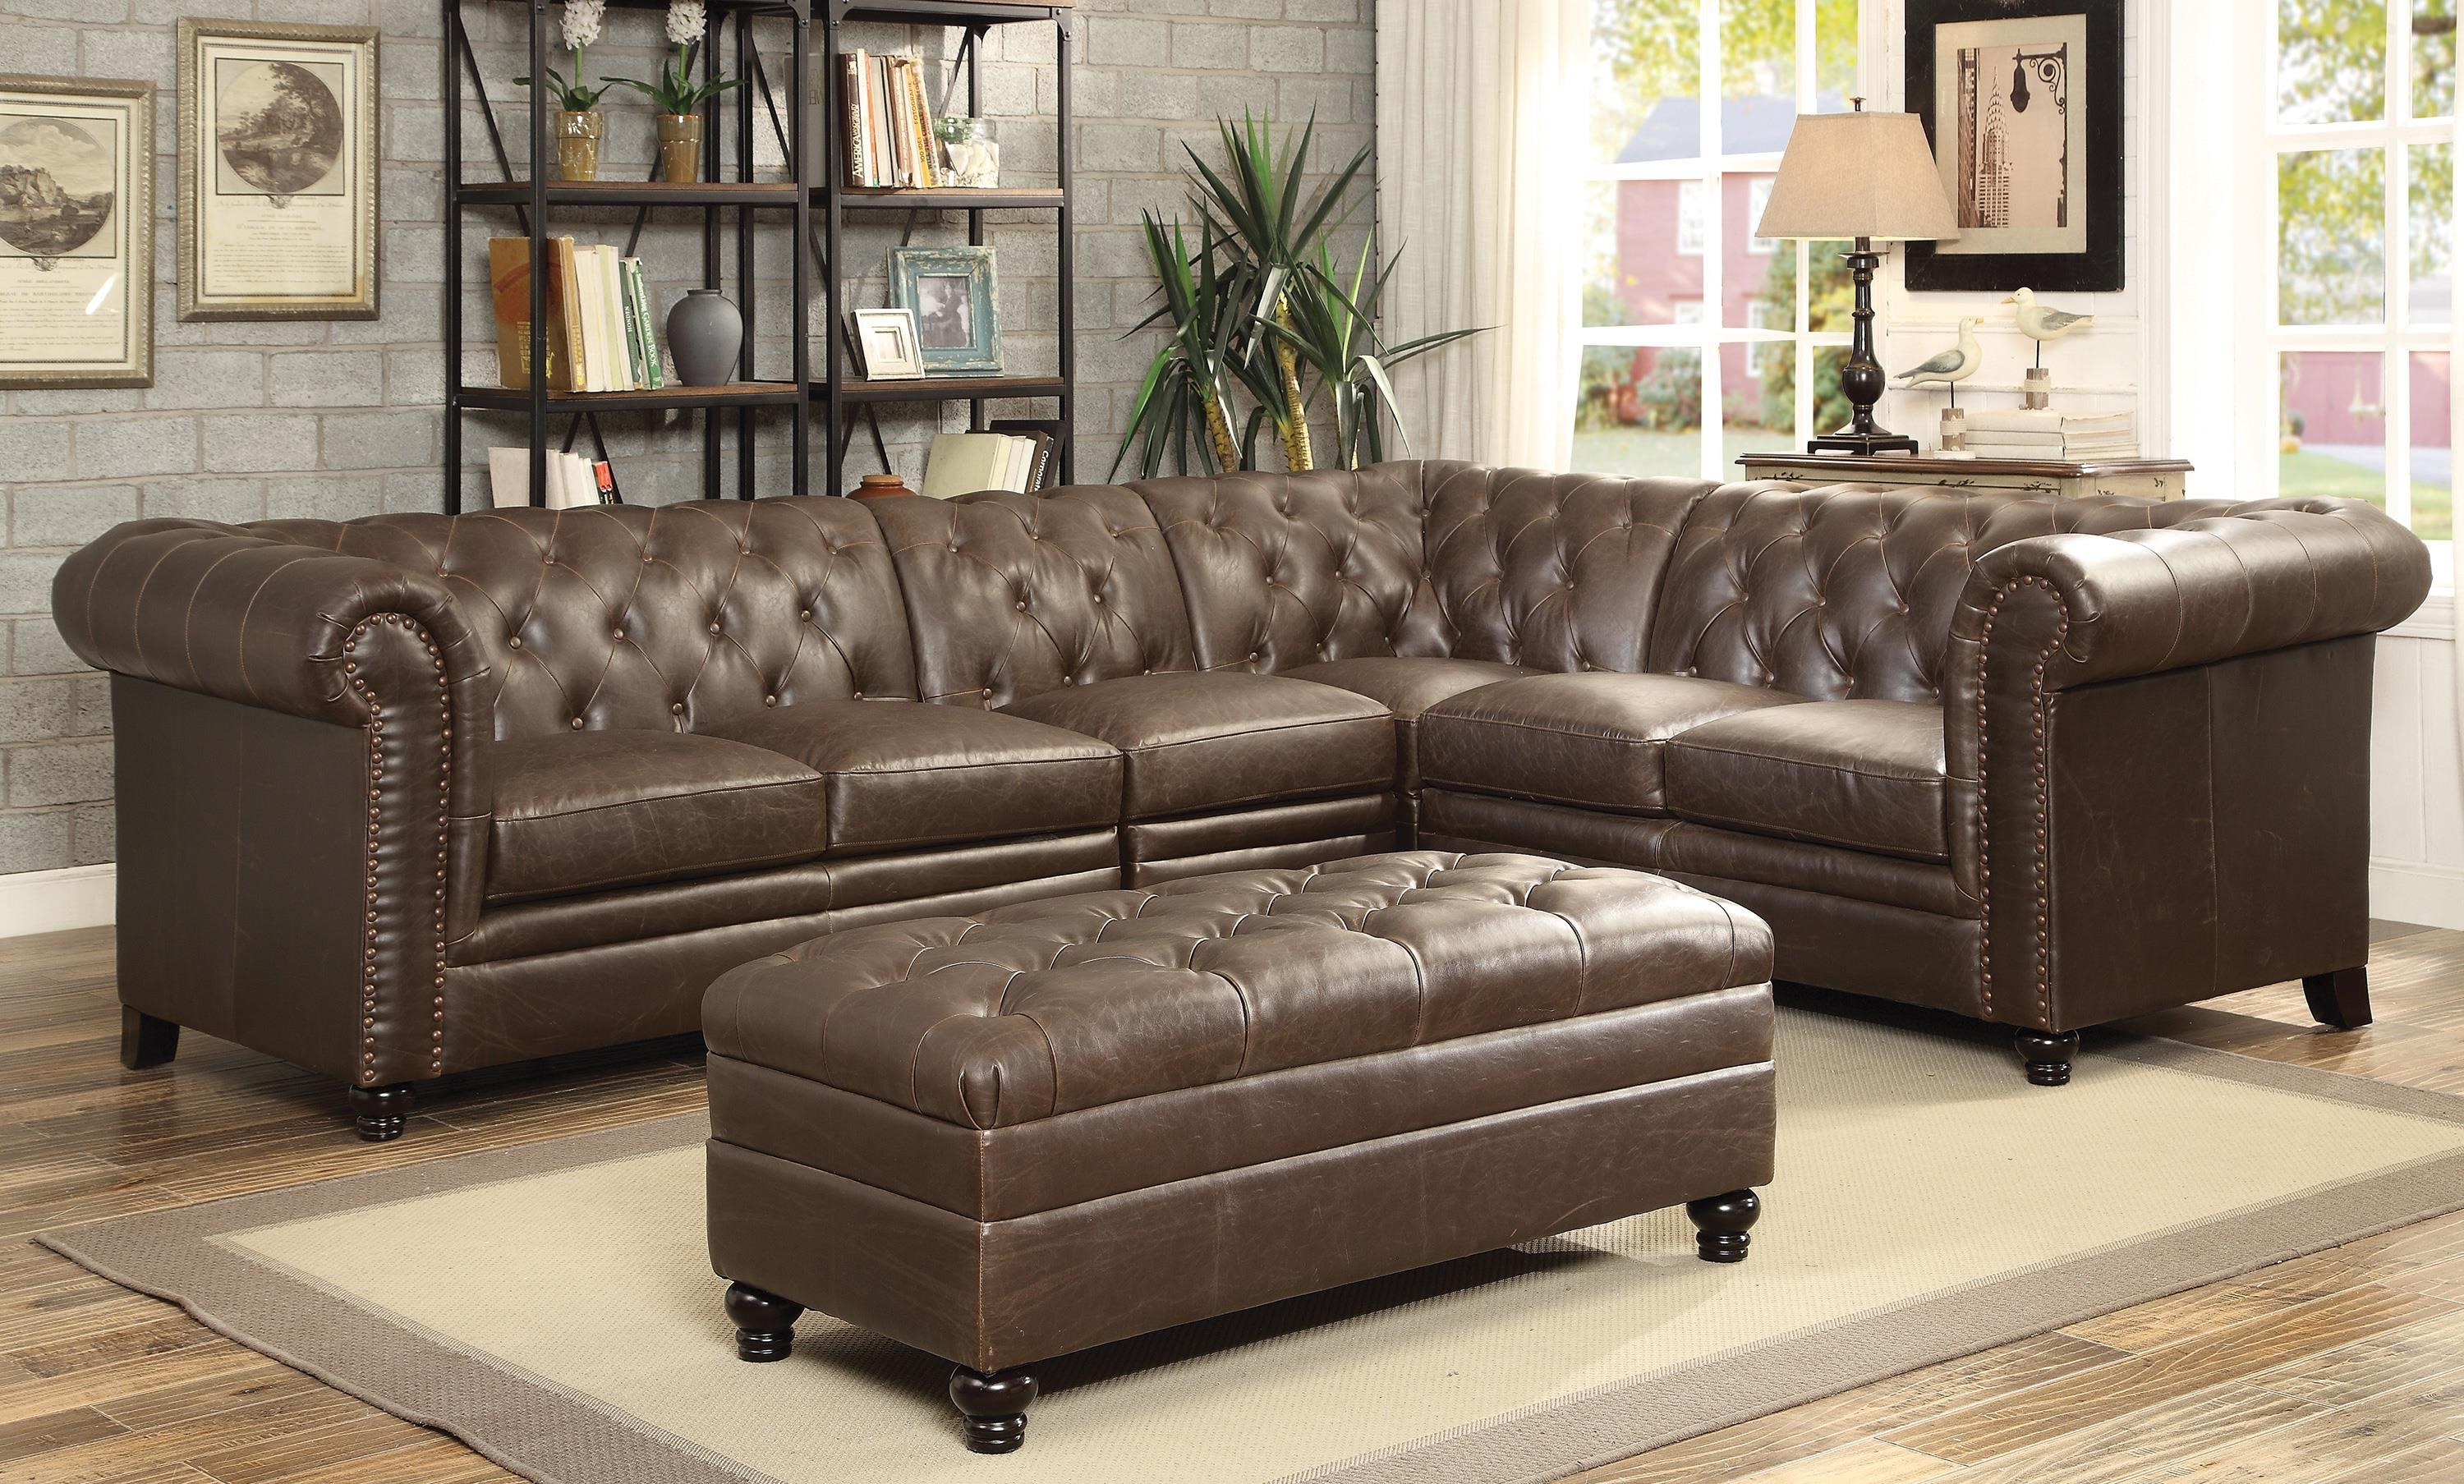 Coaster Roy 500223 Ottoman | Northeast Factory Direct | Ottomans with Button Tufted Coffee Tables (Image 6 of 30)